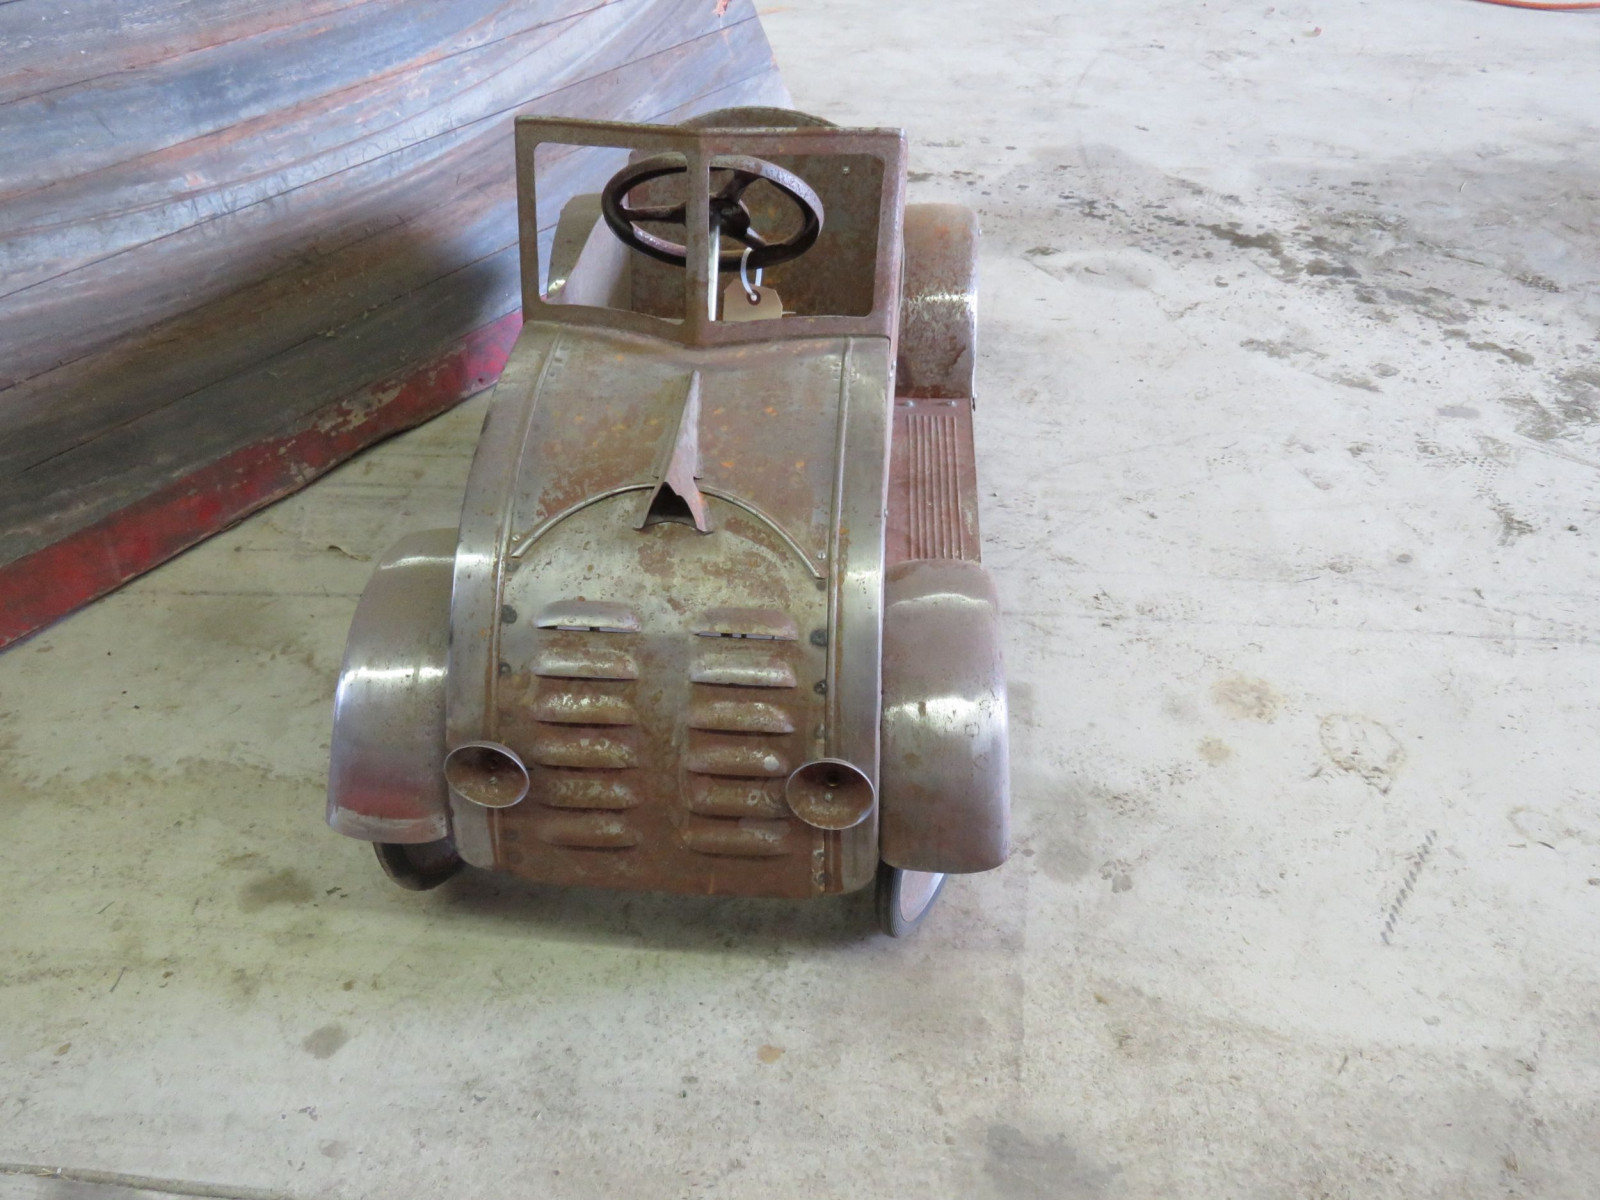 Ornate 1930's Garton DeSoto Airflow Pedal Car for Restore - Image 2